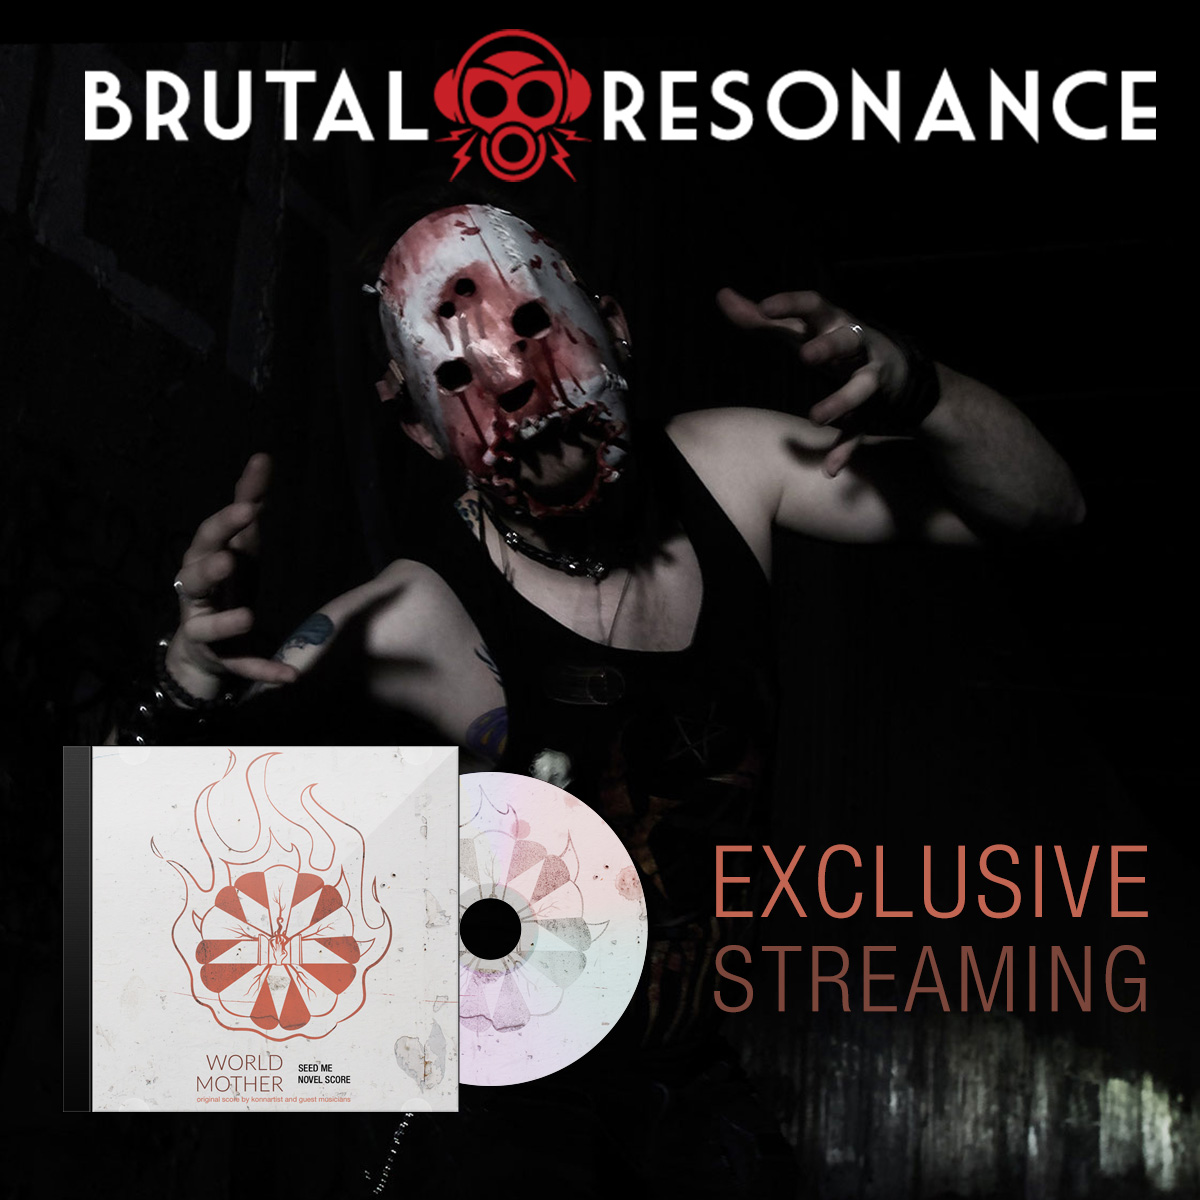 Konnartist Exclusive Streaming on Brutal Resonance